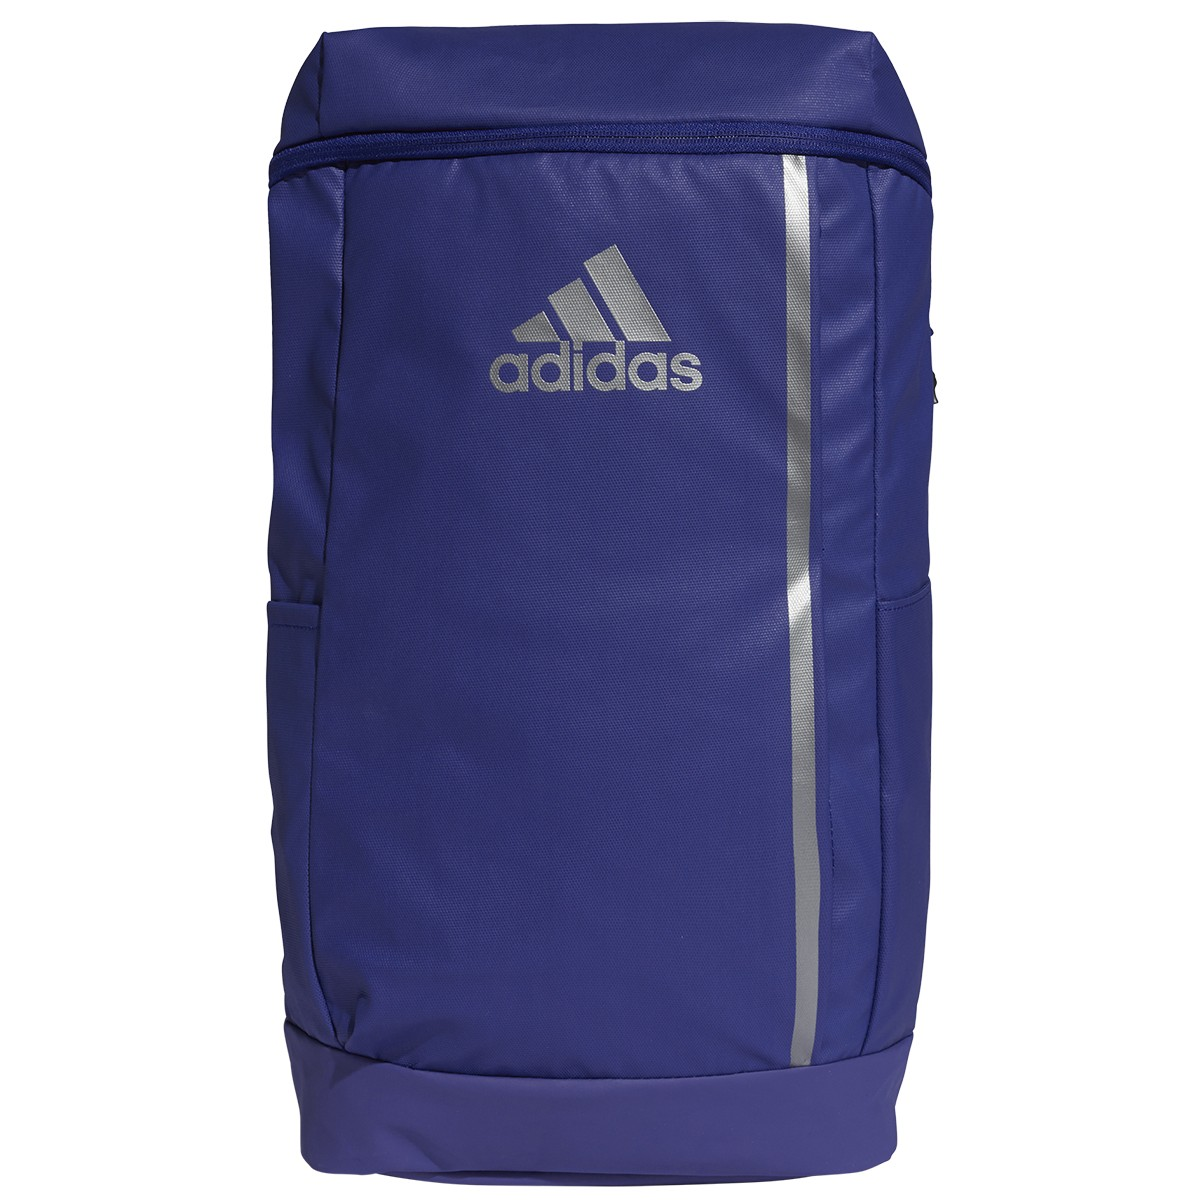 sac a dos adidas training adidas sacs tennispro. Black Bedroom Furniture Sets. Home Design Ideas